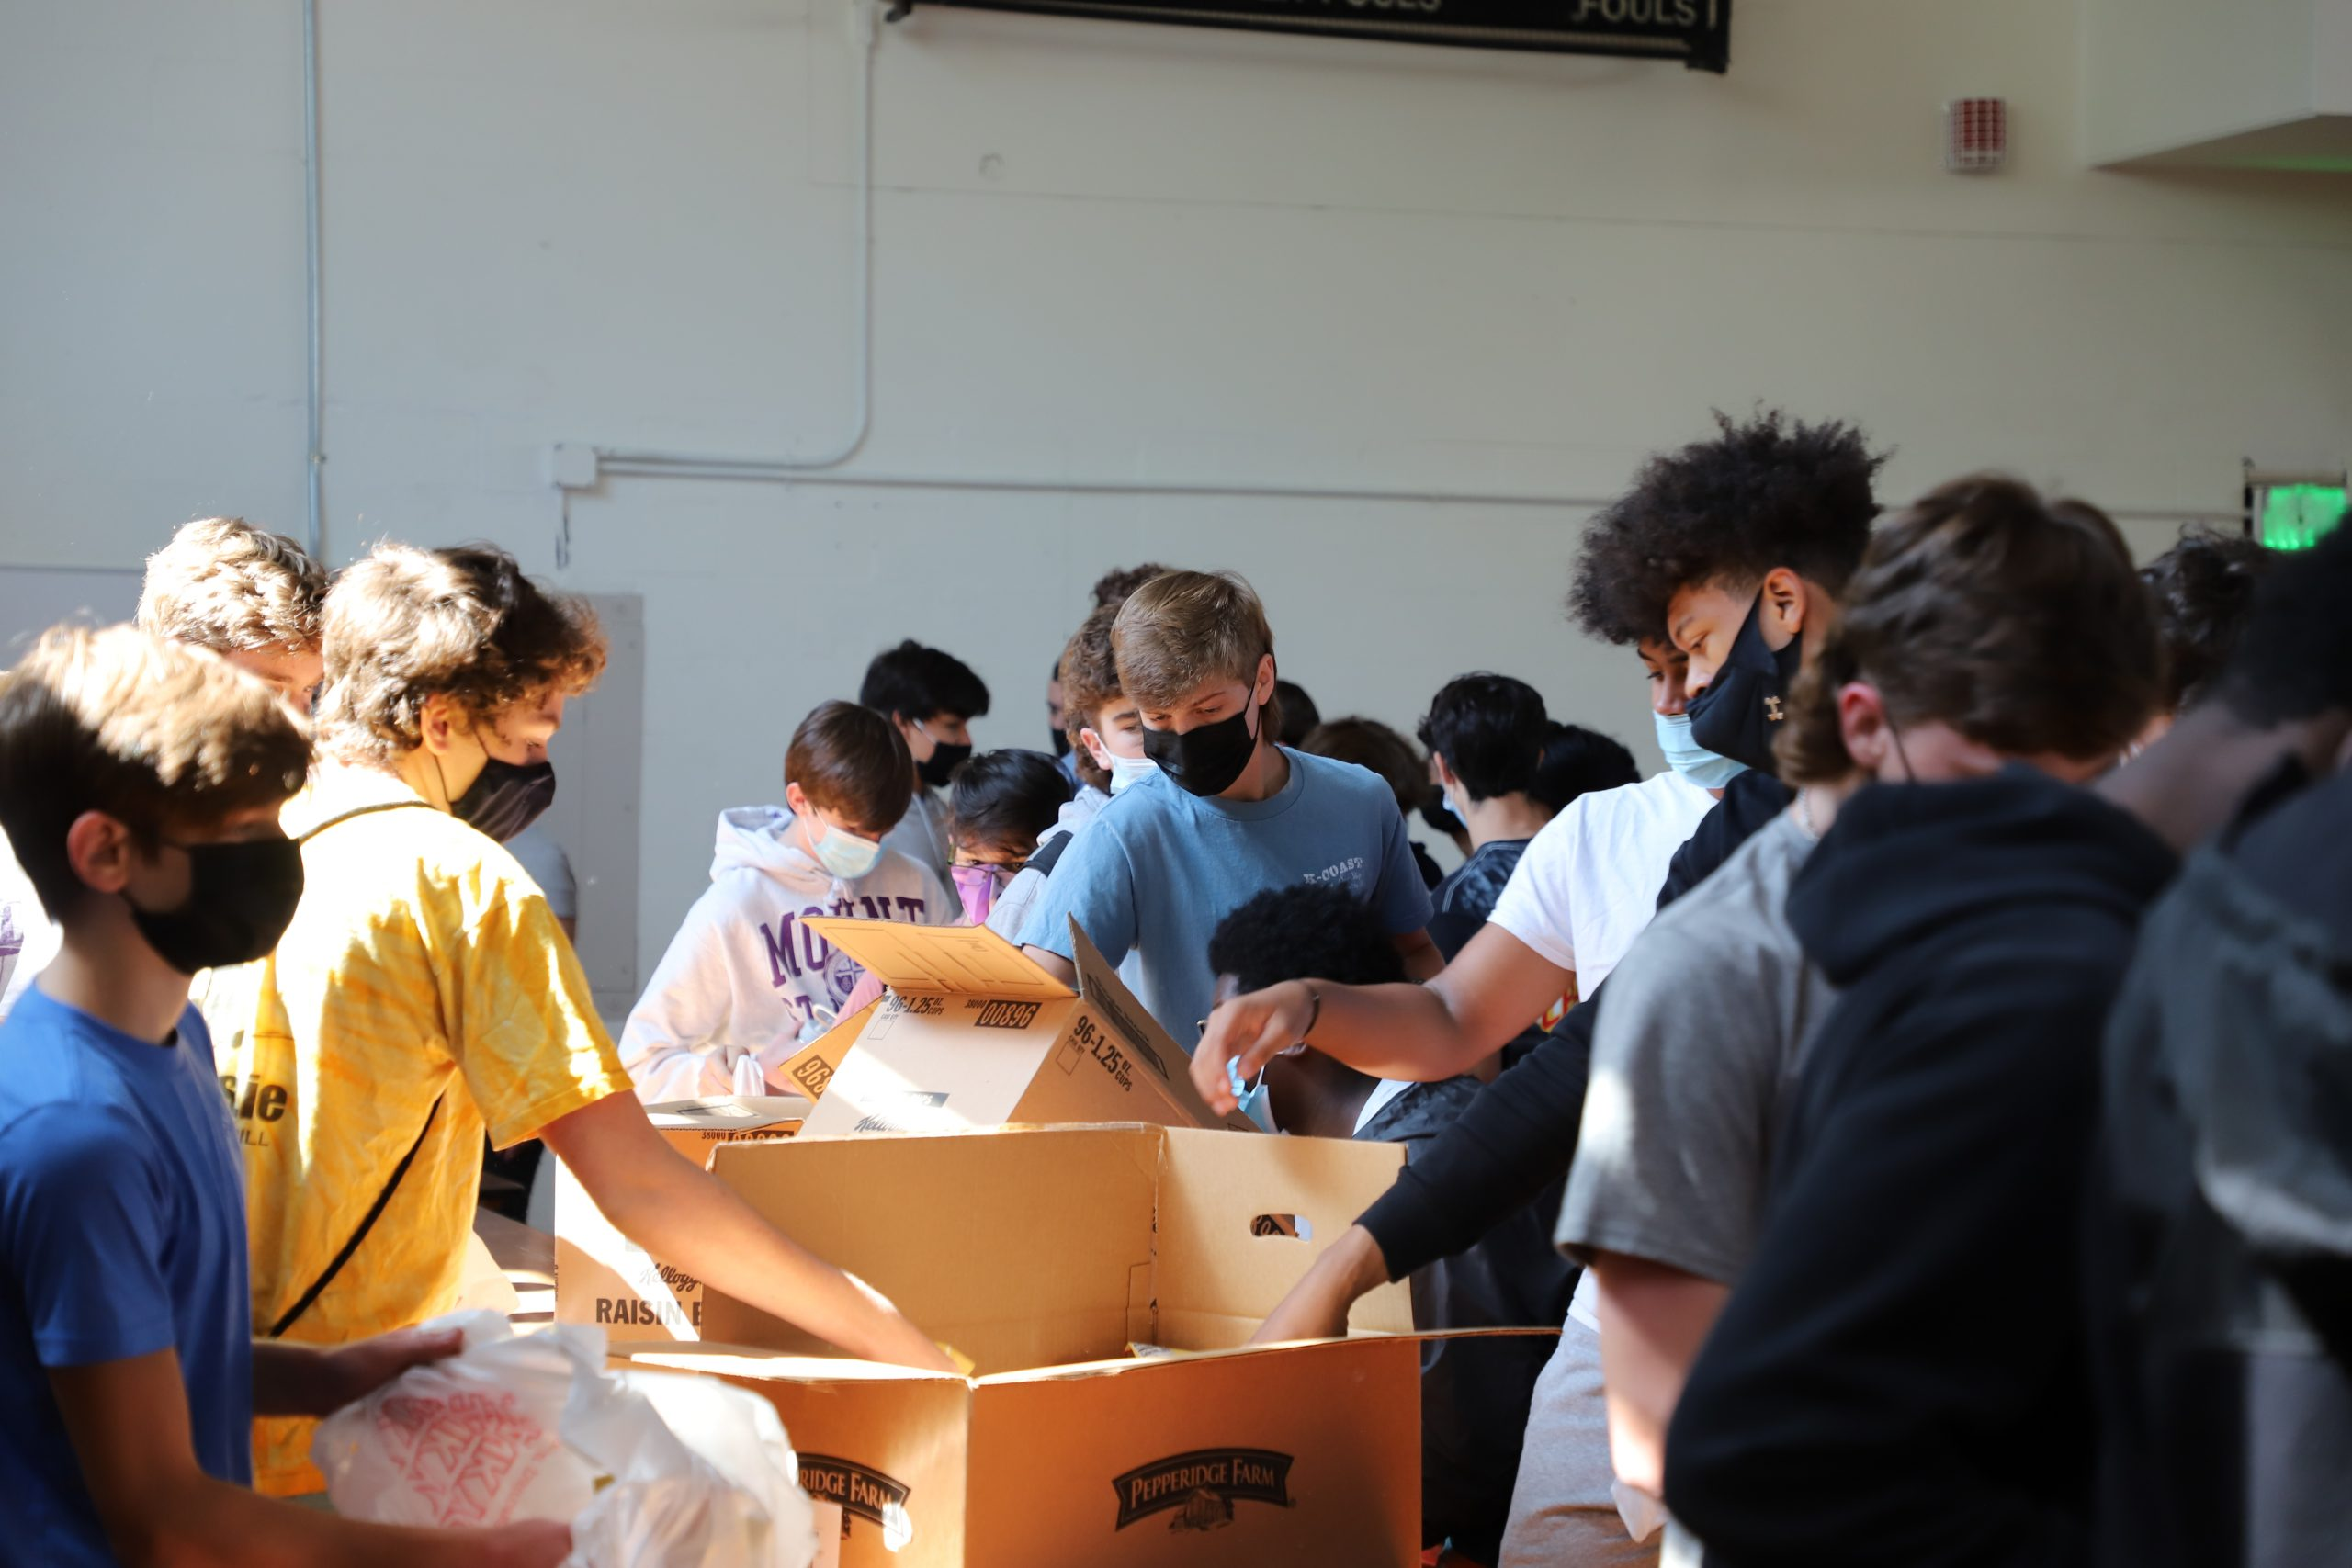 Funds from Viral NFL Donation Campaign Helps Feed Kids in Baltimore